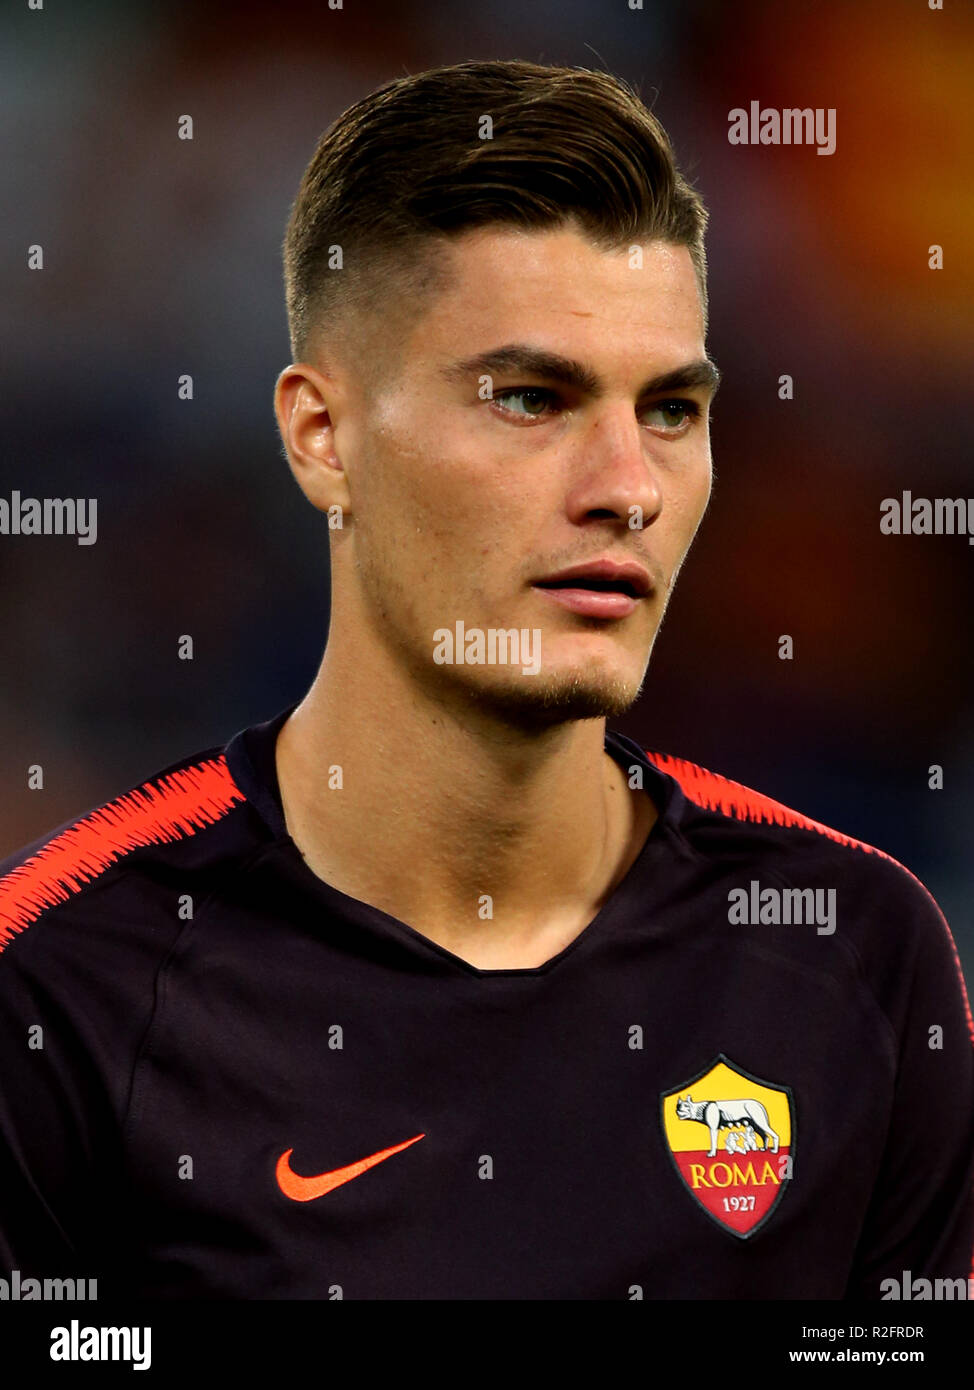 Patrik Schick High Resolution Stock Photography and Images - Alamy